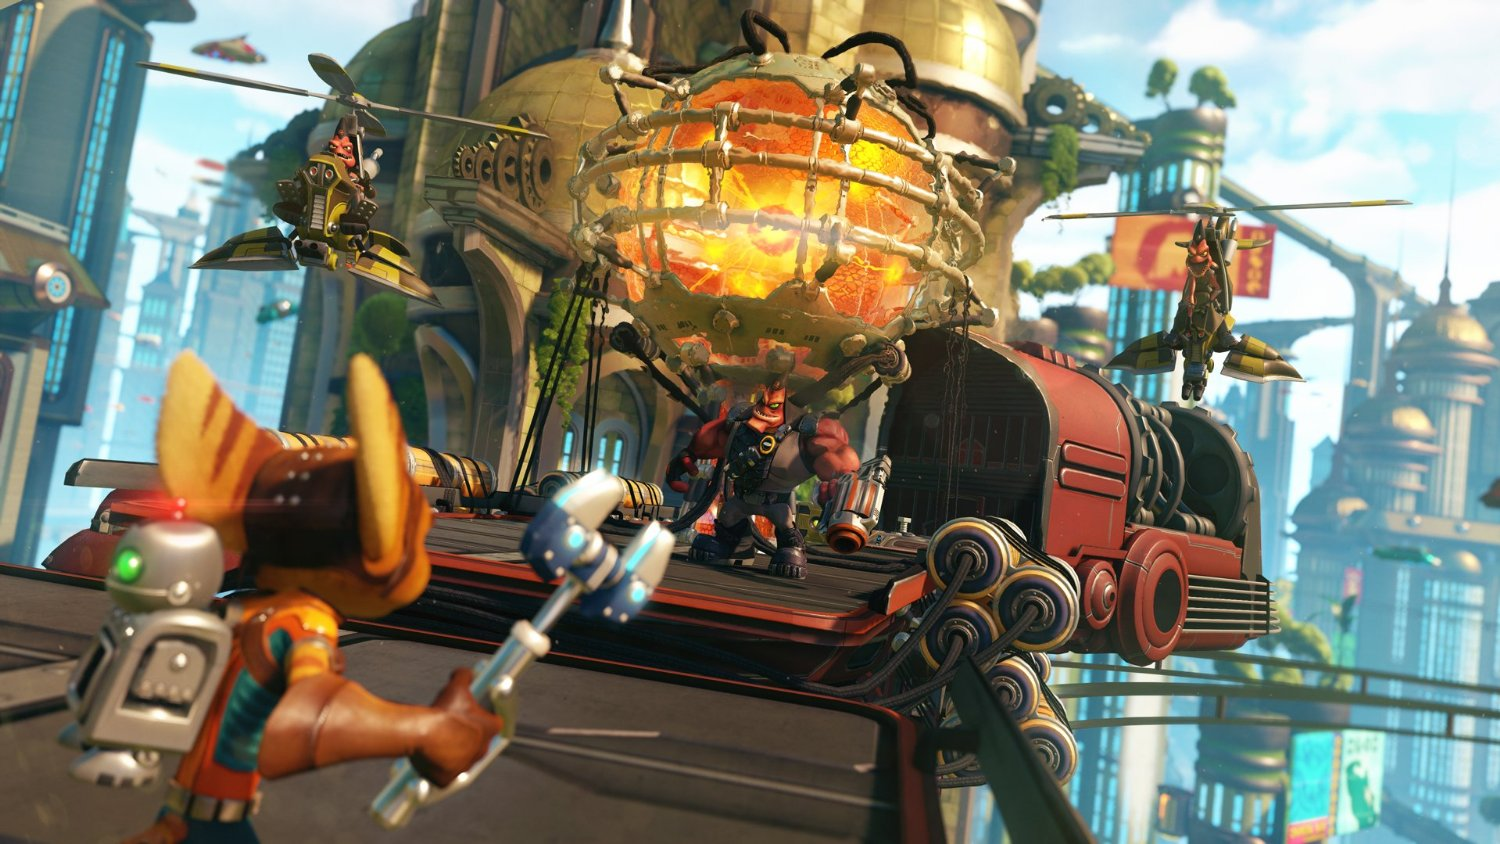 Ratchet & Clank sur Playstation 4.